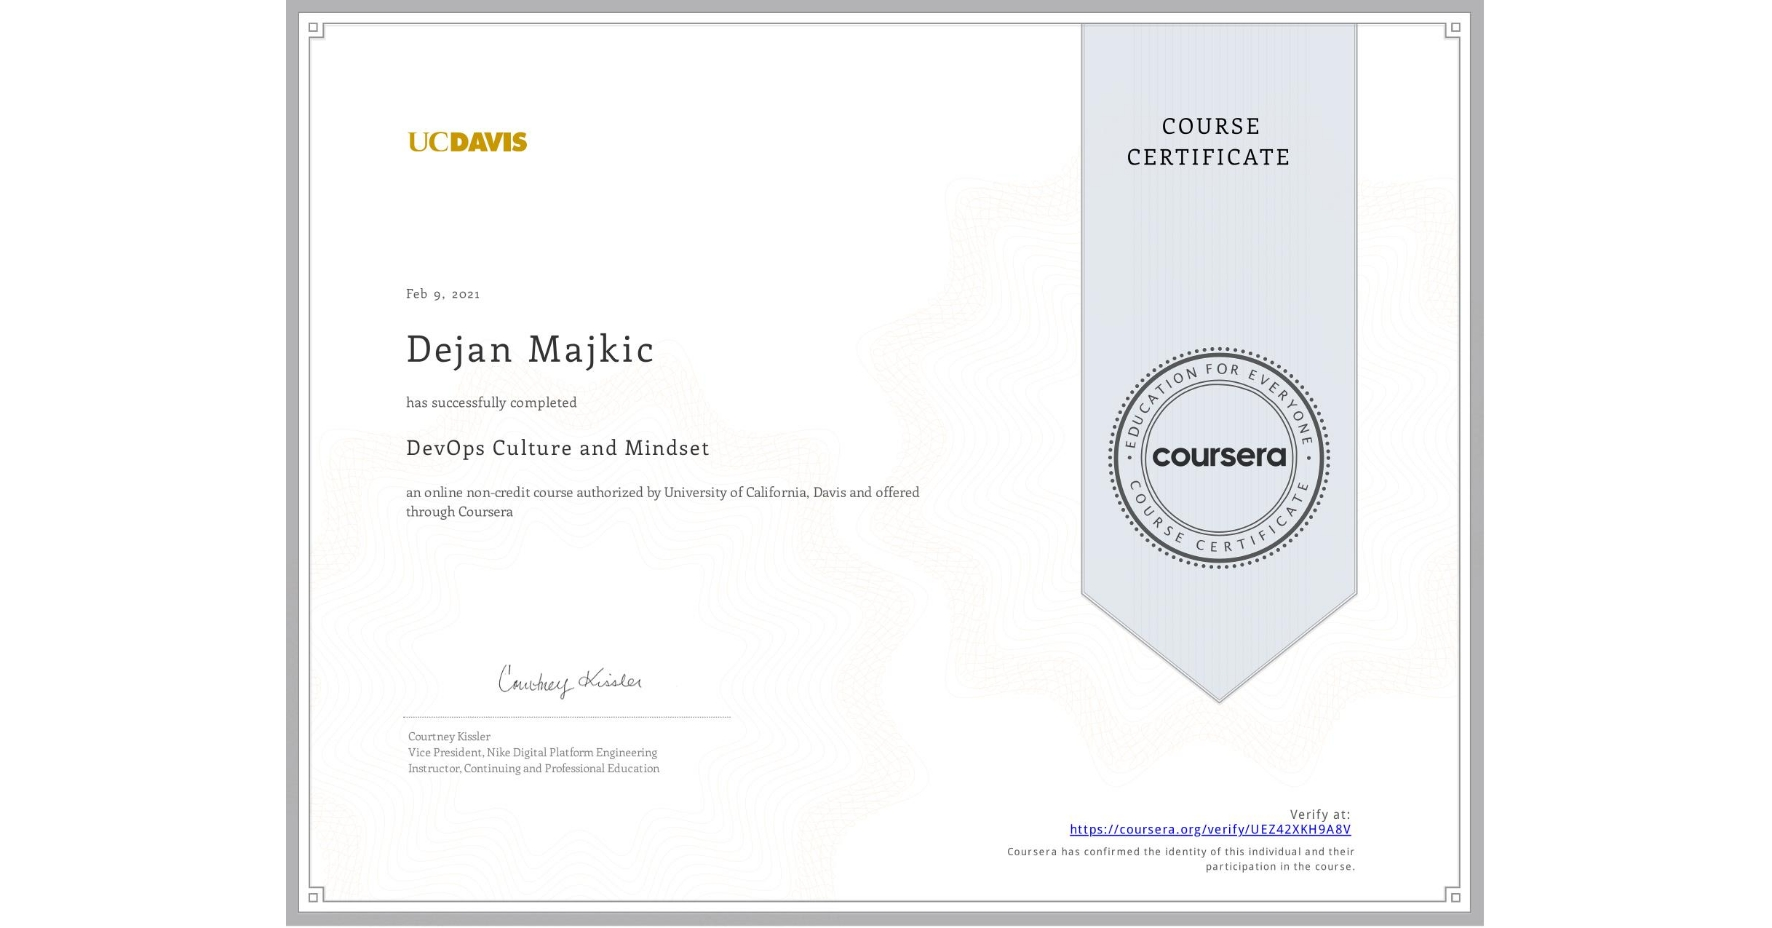 View certificate for Dejan Majkic, DevOps Culture and Mindset, an online non-credit course authorized by University of California, Davis and offered through Coursera